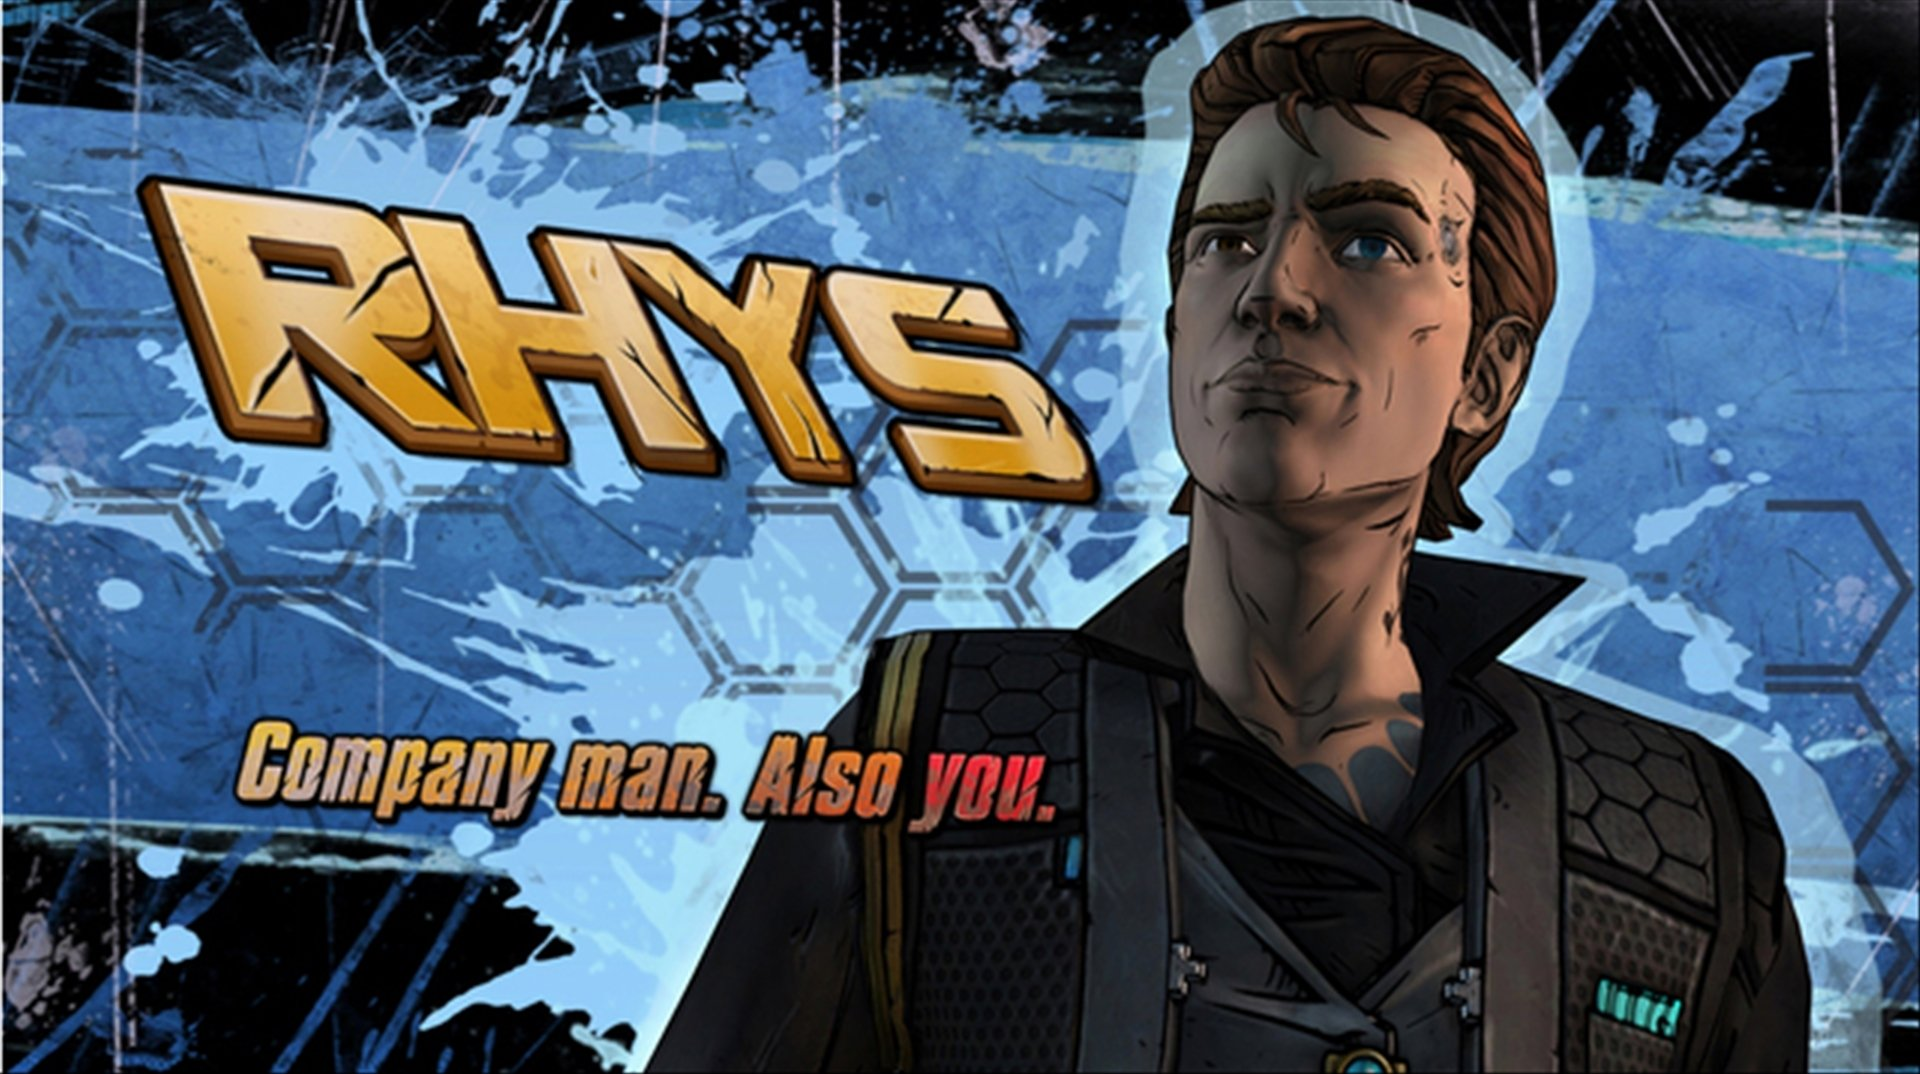 tales from the borderlands 1 3 iphone用ダウンロード無料